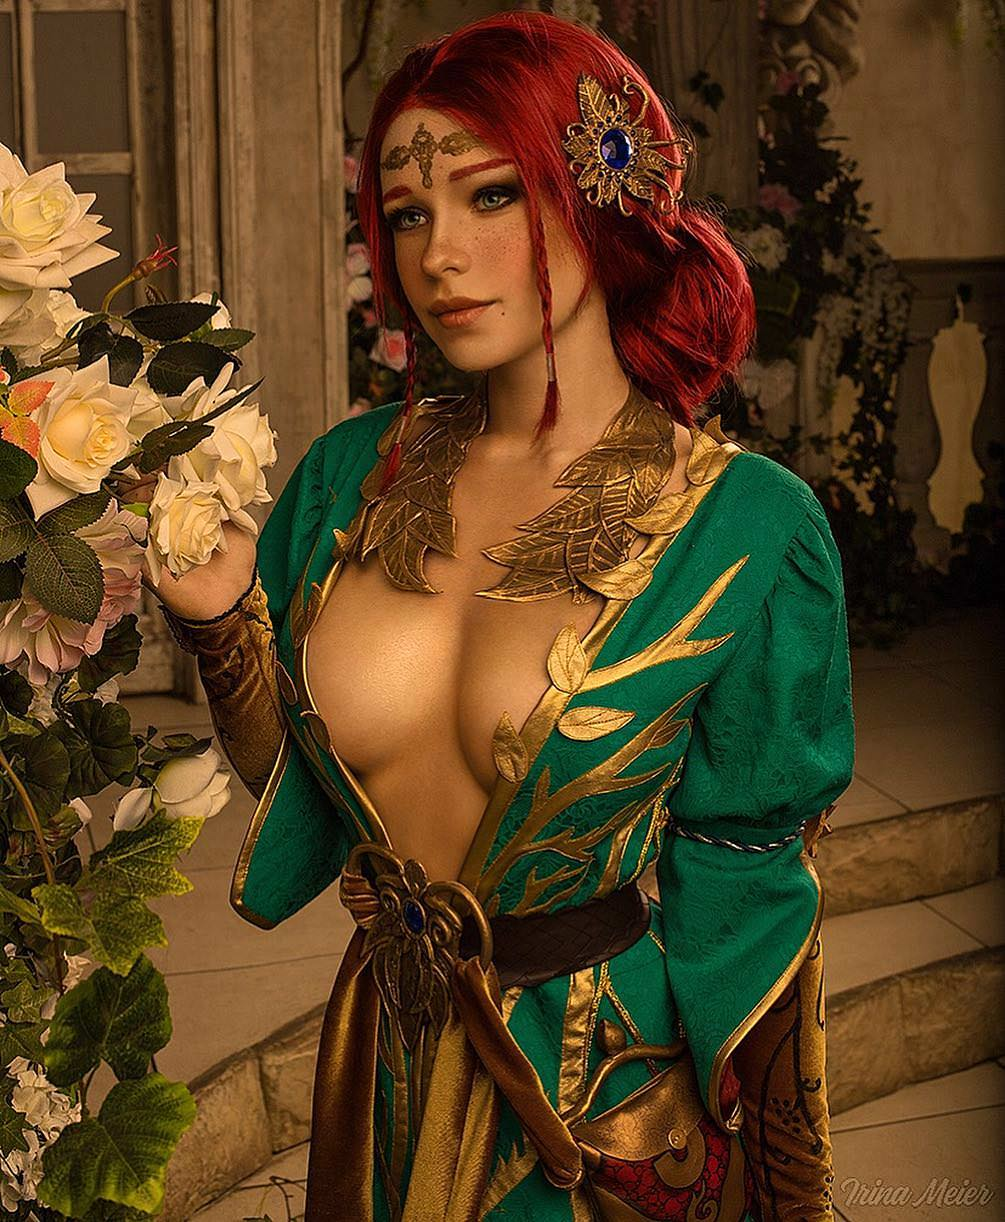 Triss Merigold Hot Boobs